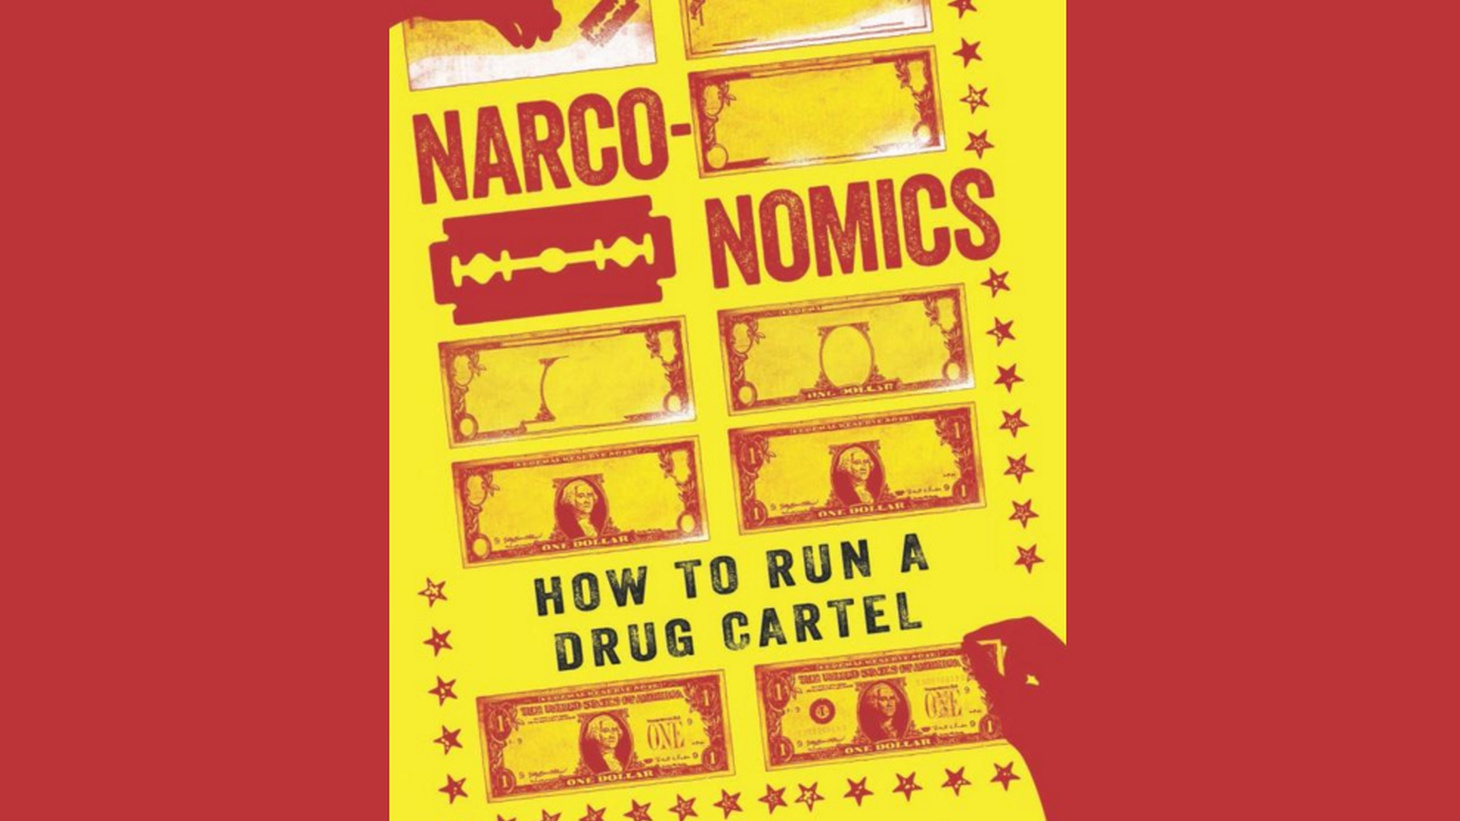 In April, the United Nations will host a special assembly on what's called the worldwide War on Drugs. The so-called War on Drugs is a vastly expensive failure, but good money is still being thrown after bad.